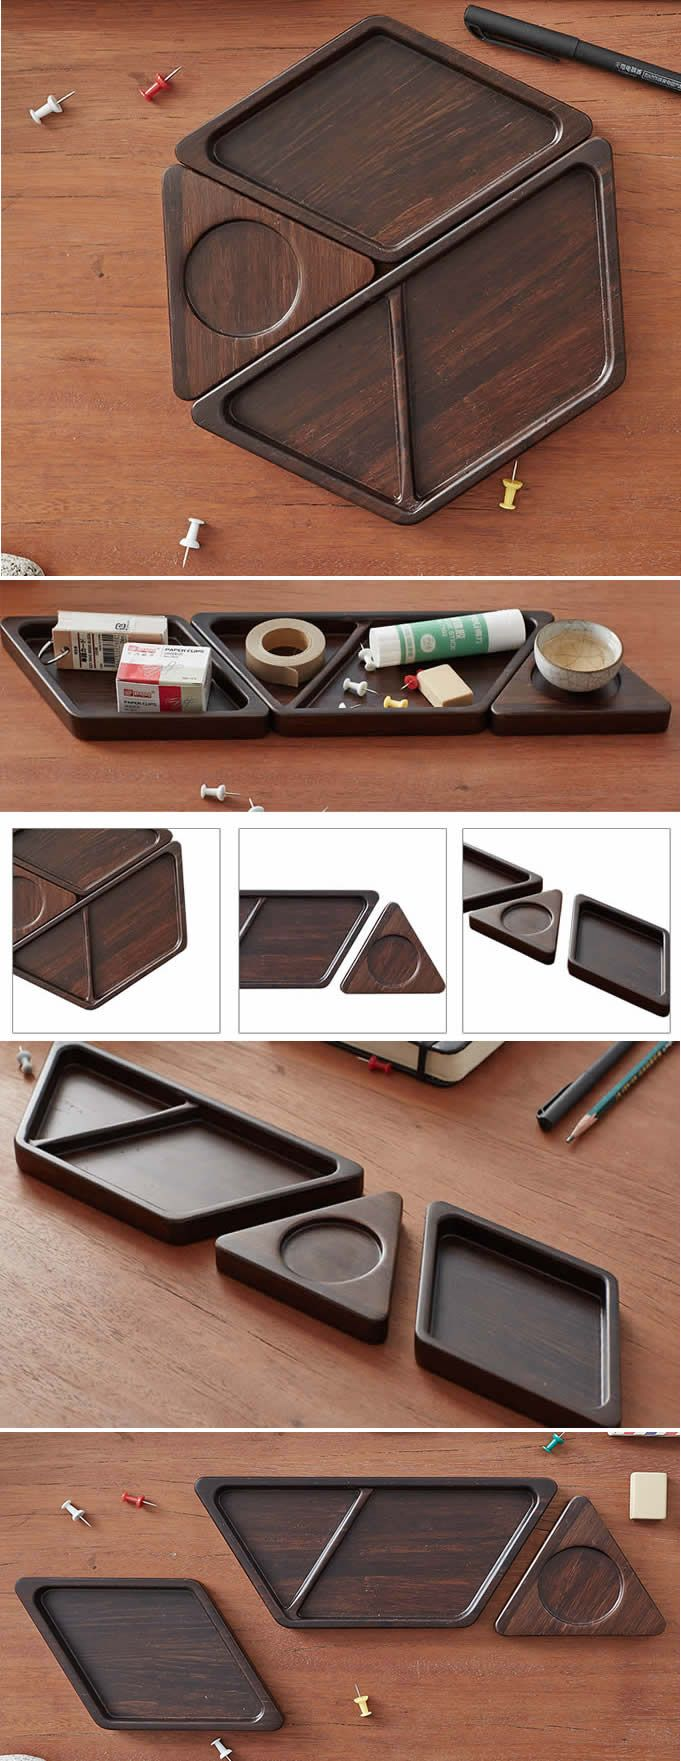 Bamboo Office Desk Organizer Tray Storage Holder Set